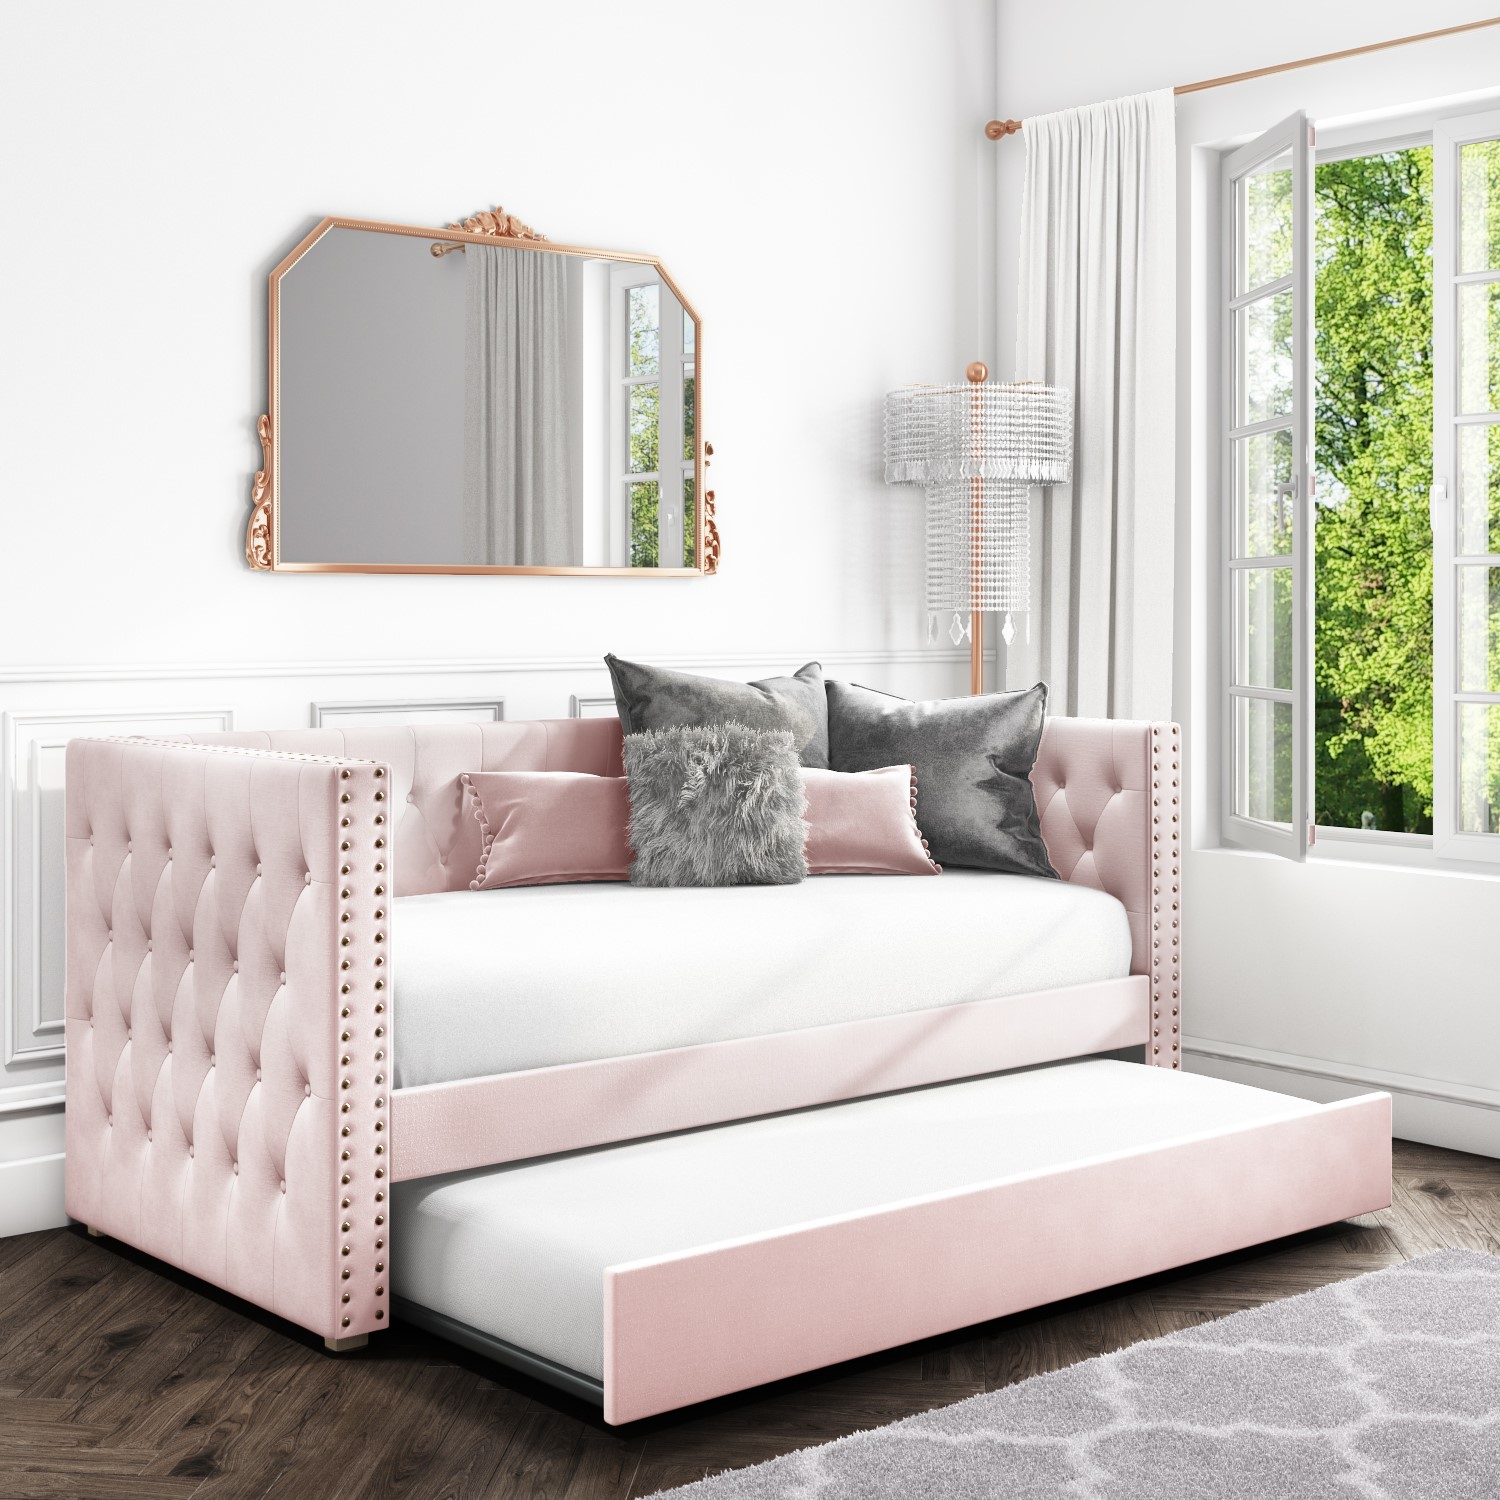 Sacha Velvet Sofa Bed in Baby Pink   Trundle Bed Included ...